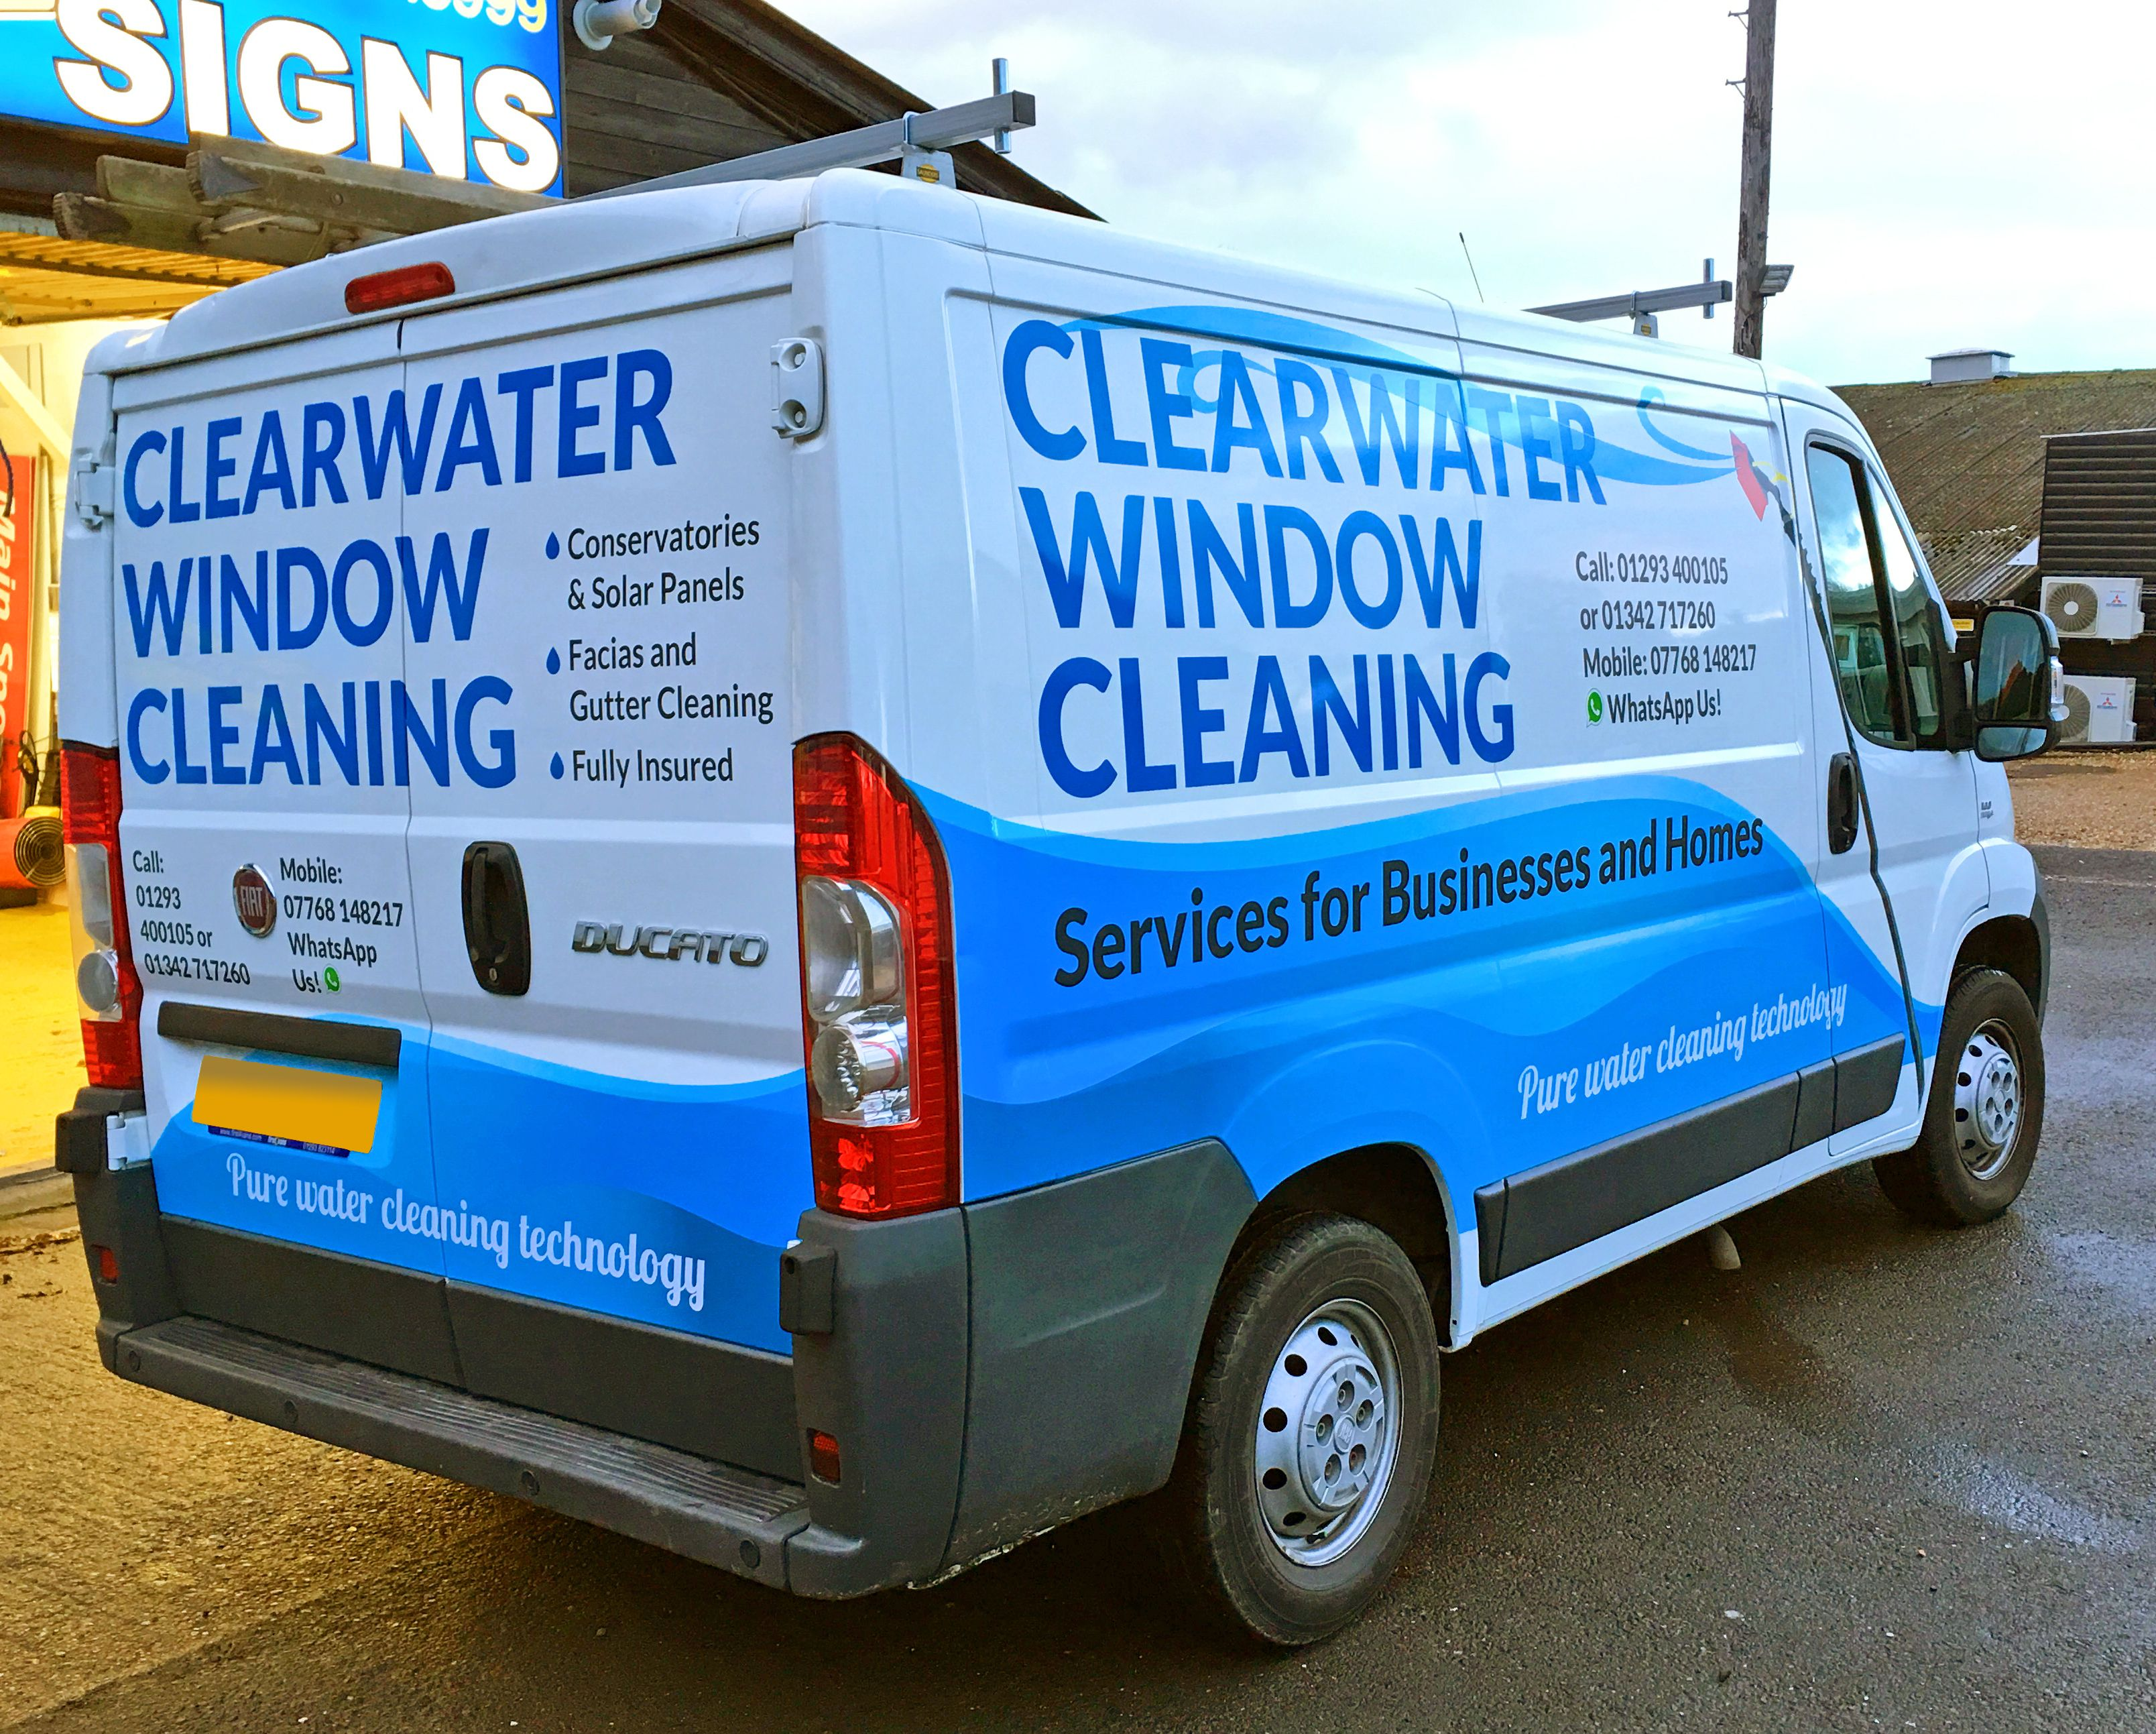 475b843e93 Fiat Ducato van graphics for Clearwater Window Cleaning